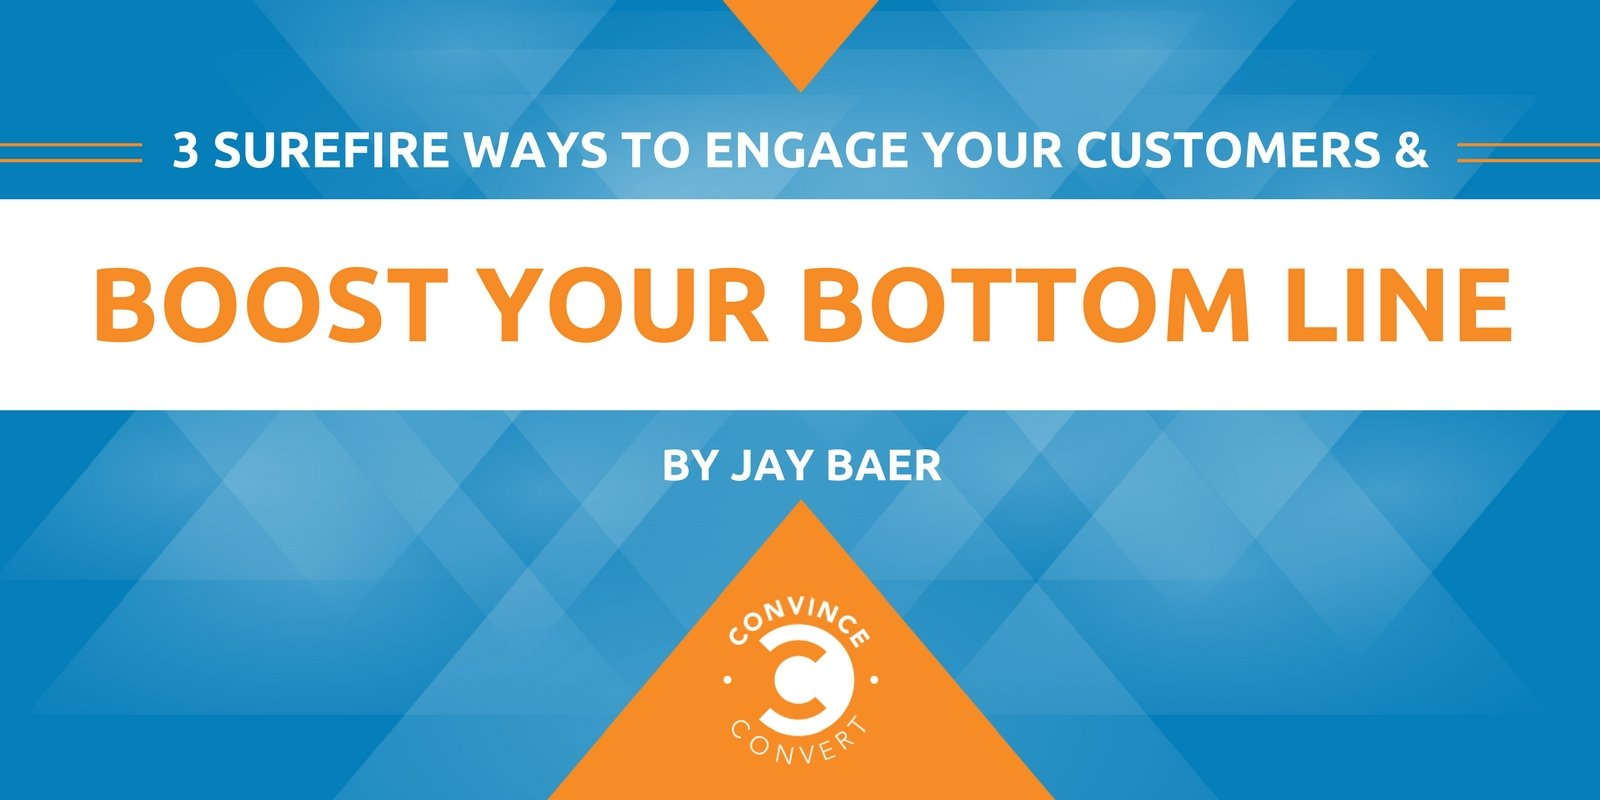 3 Surefire Ways to Engage Your Customers and Boost Your Bottom Line